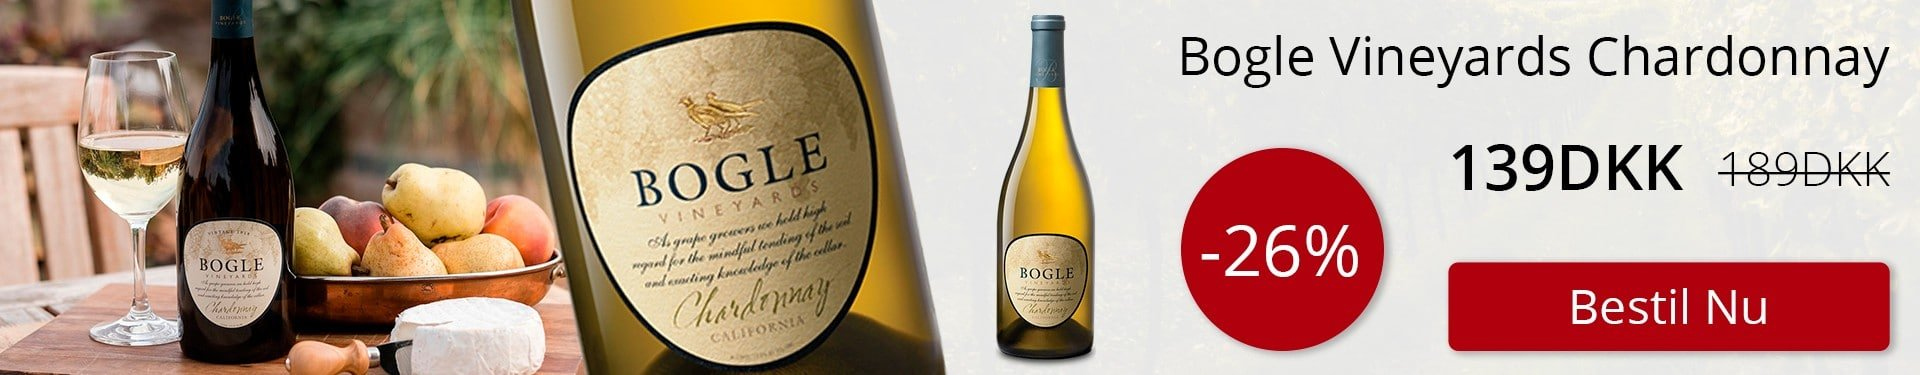 Chardonnay 2017 Bogle Vineyards